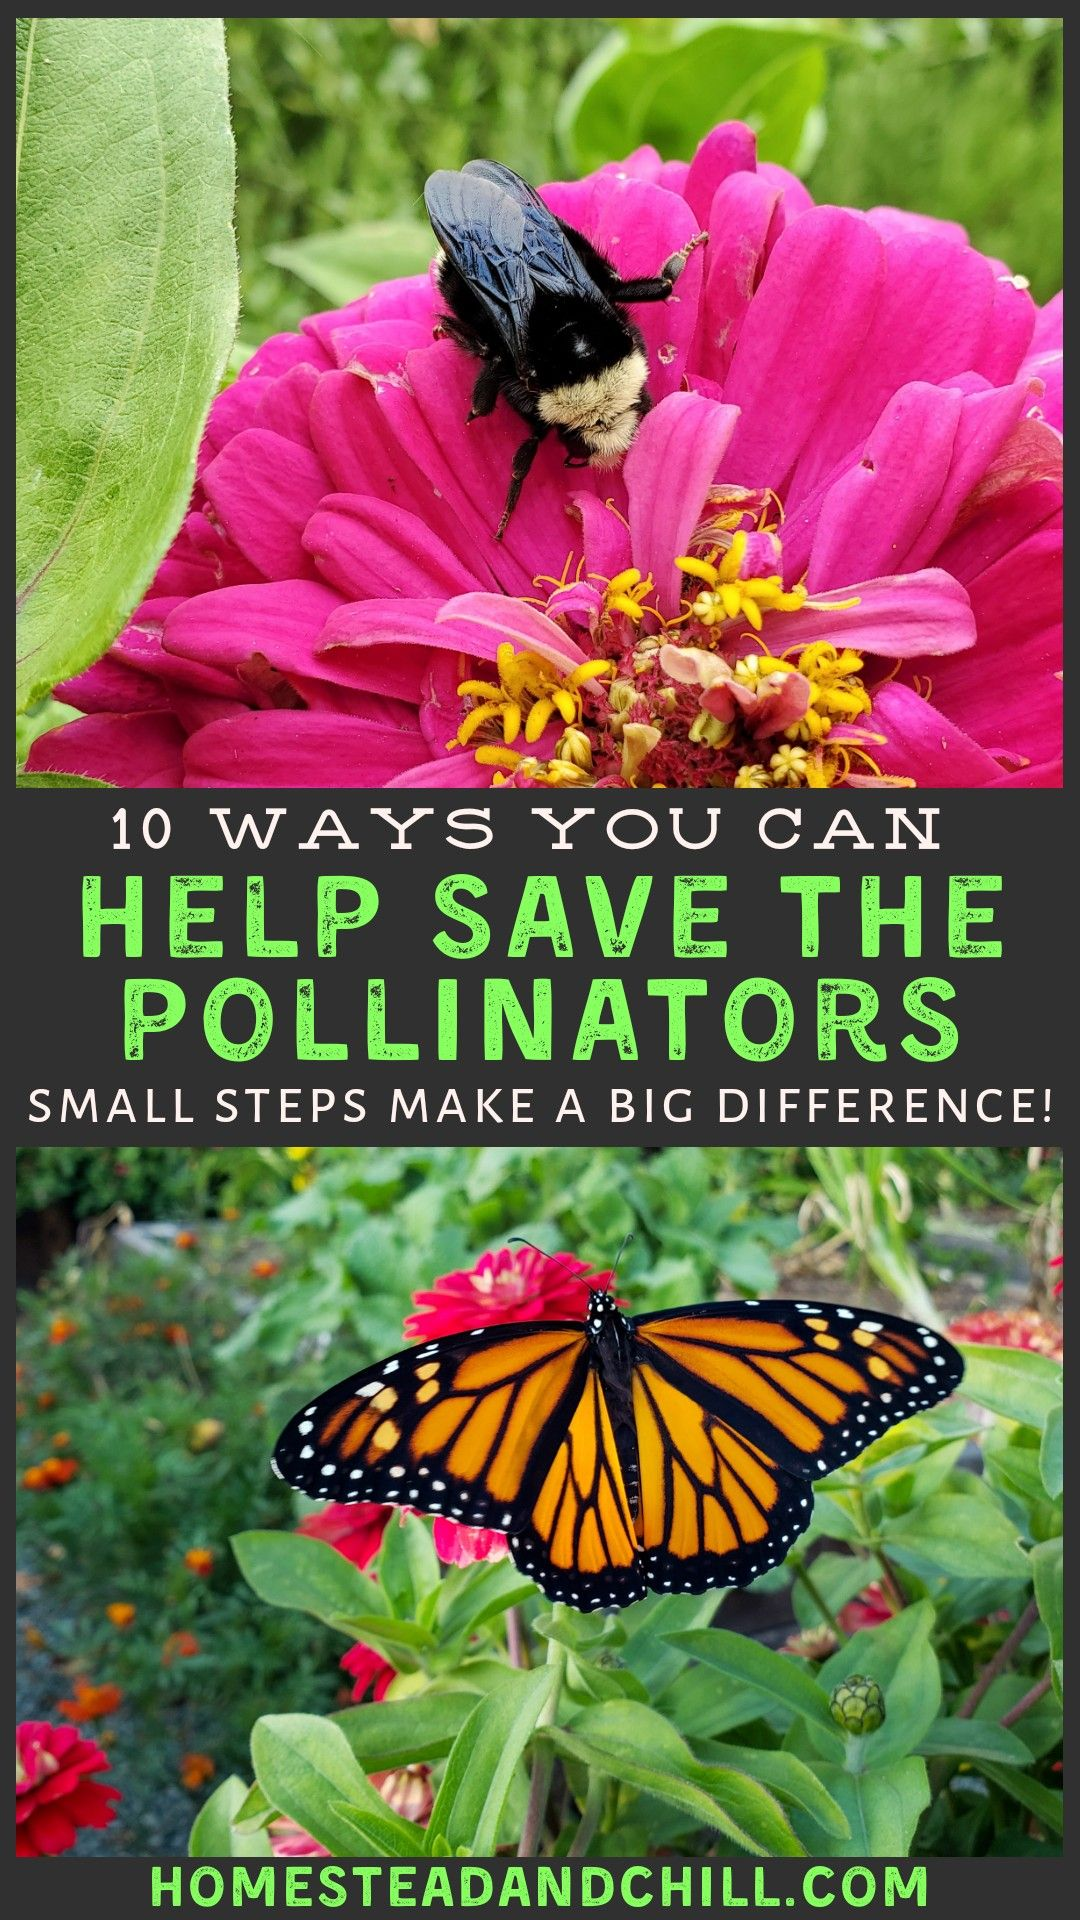 10 Ways To Help Pollinators Save Bees Butterflies Beyond Homestead And Chill In 2020 Pollination Wildlife Nature Wildlife Habitat